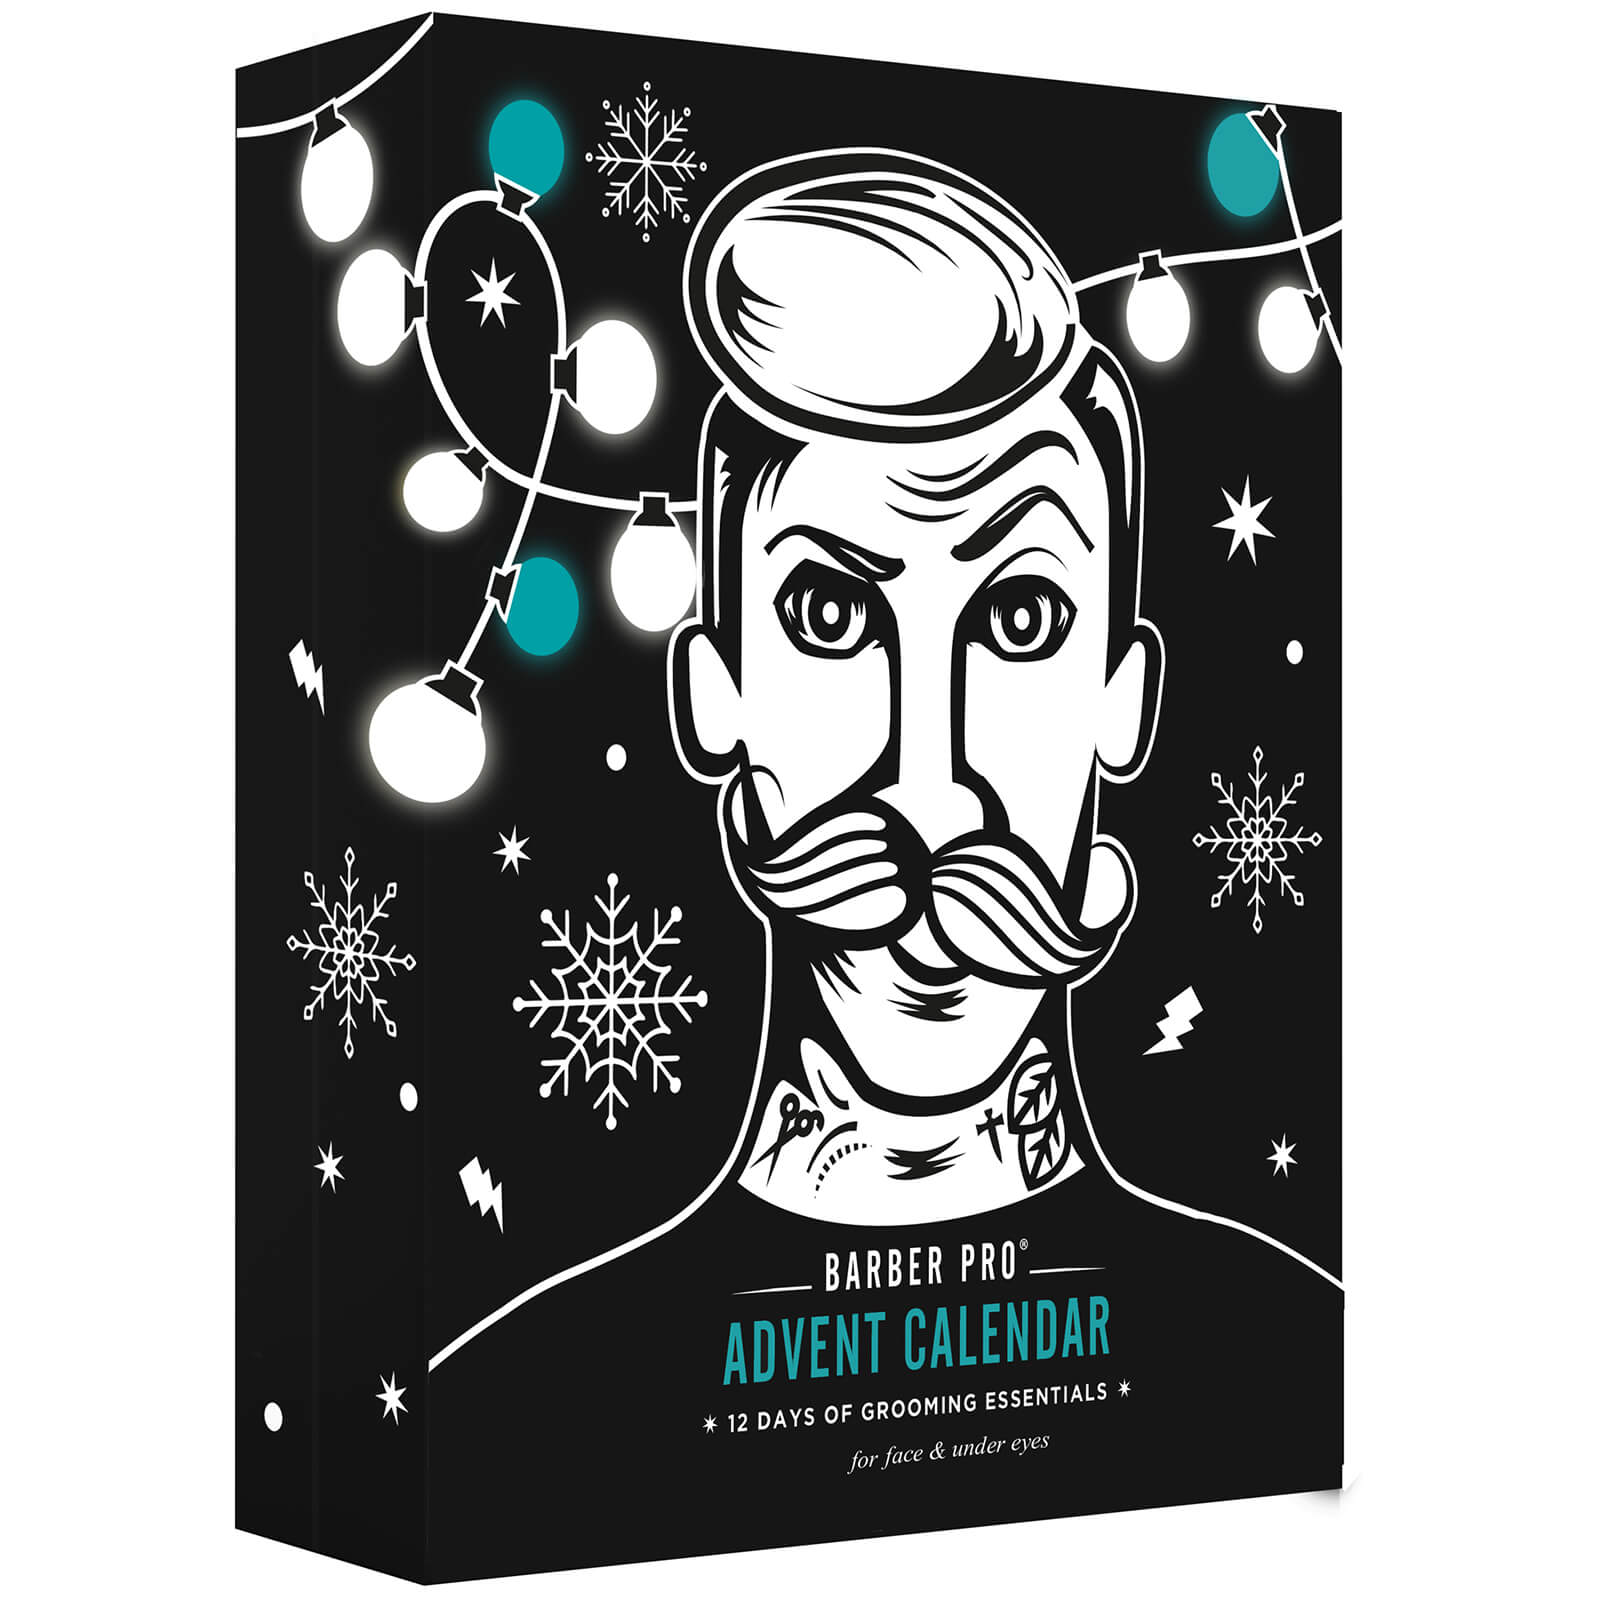 BARBER PRO 12 Days of Grooming Essentials Adventskalender 2020